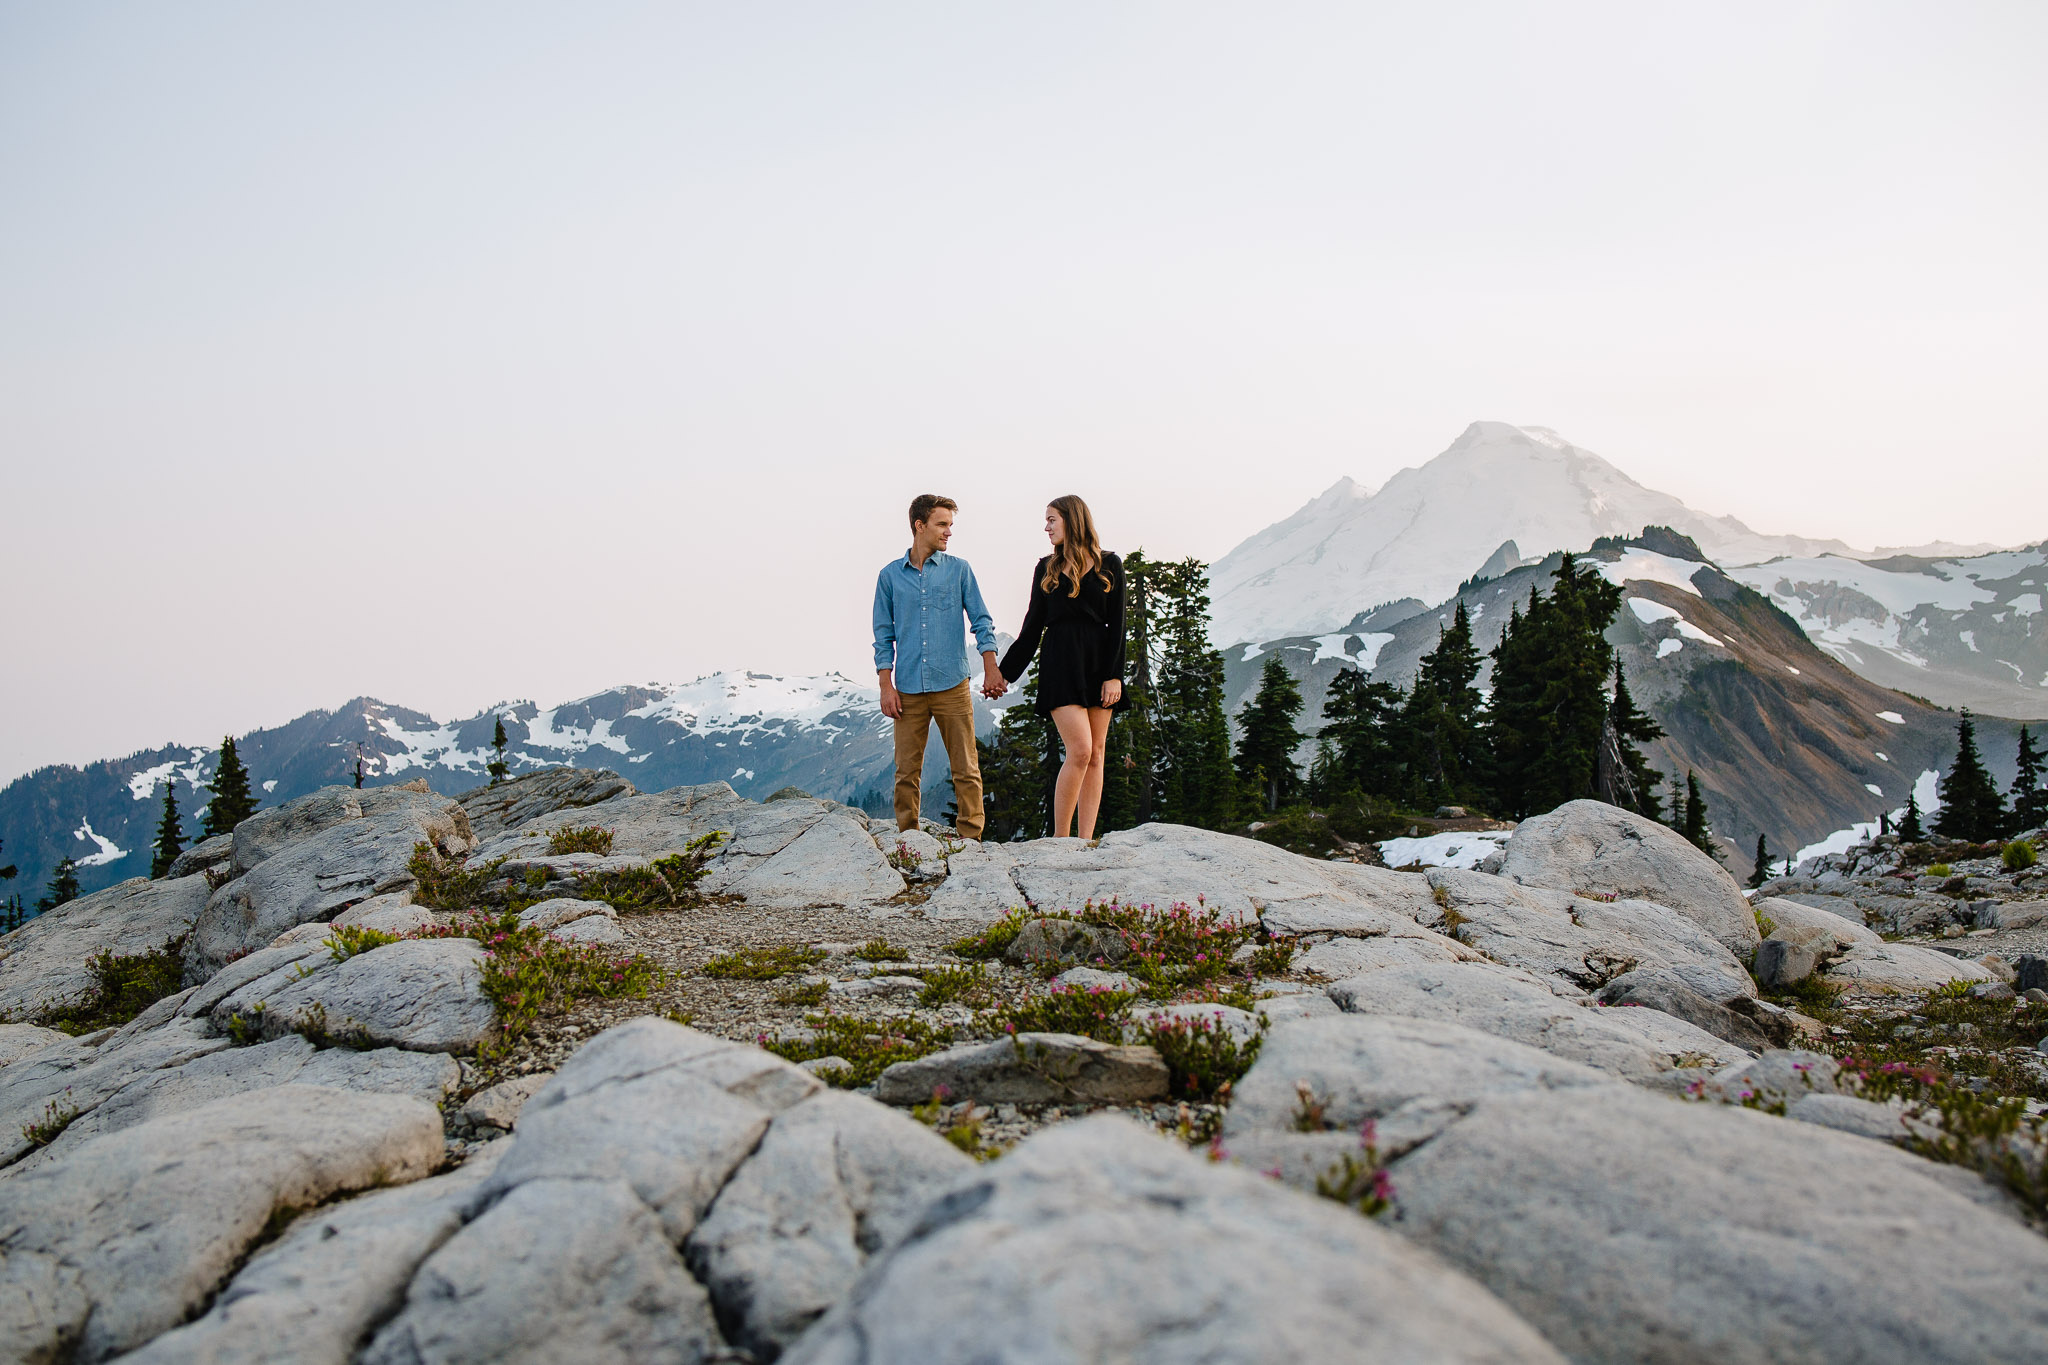 Artist Point Mount Baker Scenery Engagement Photography Inspo Couple Romantic Young Black Jean Sunset-085.jpg